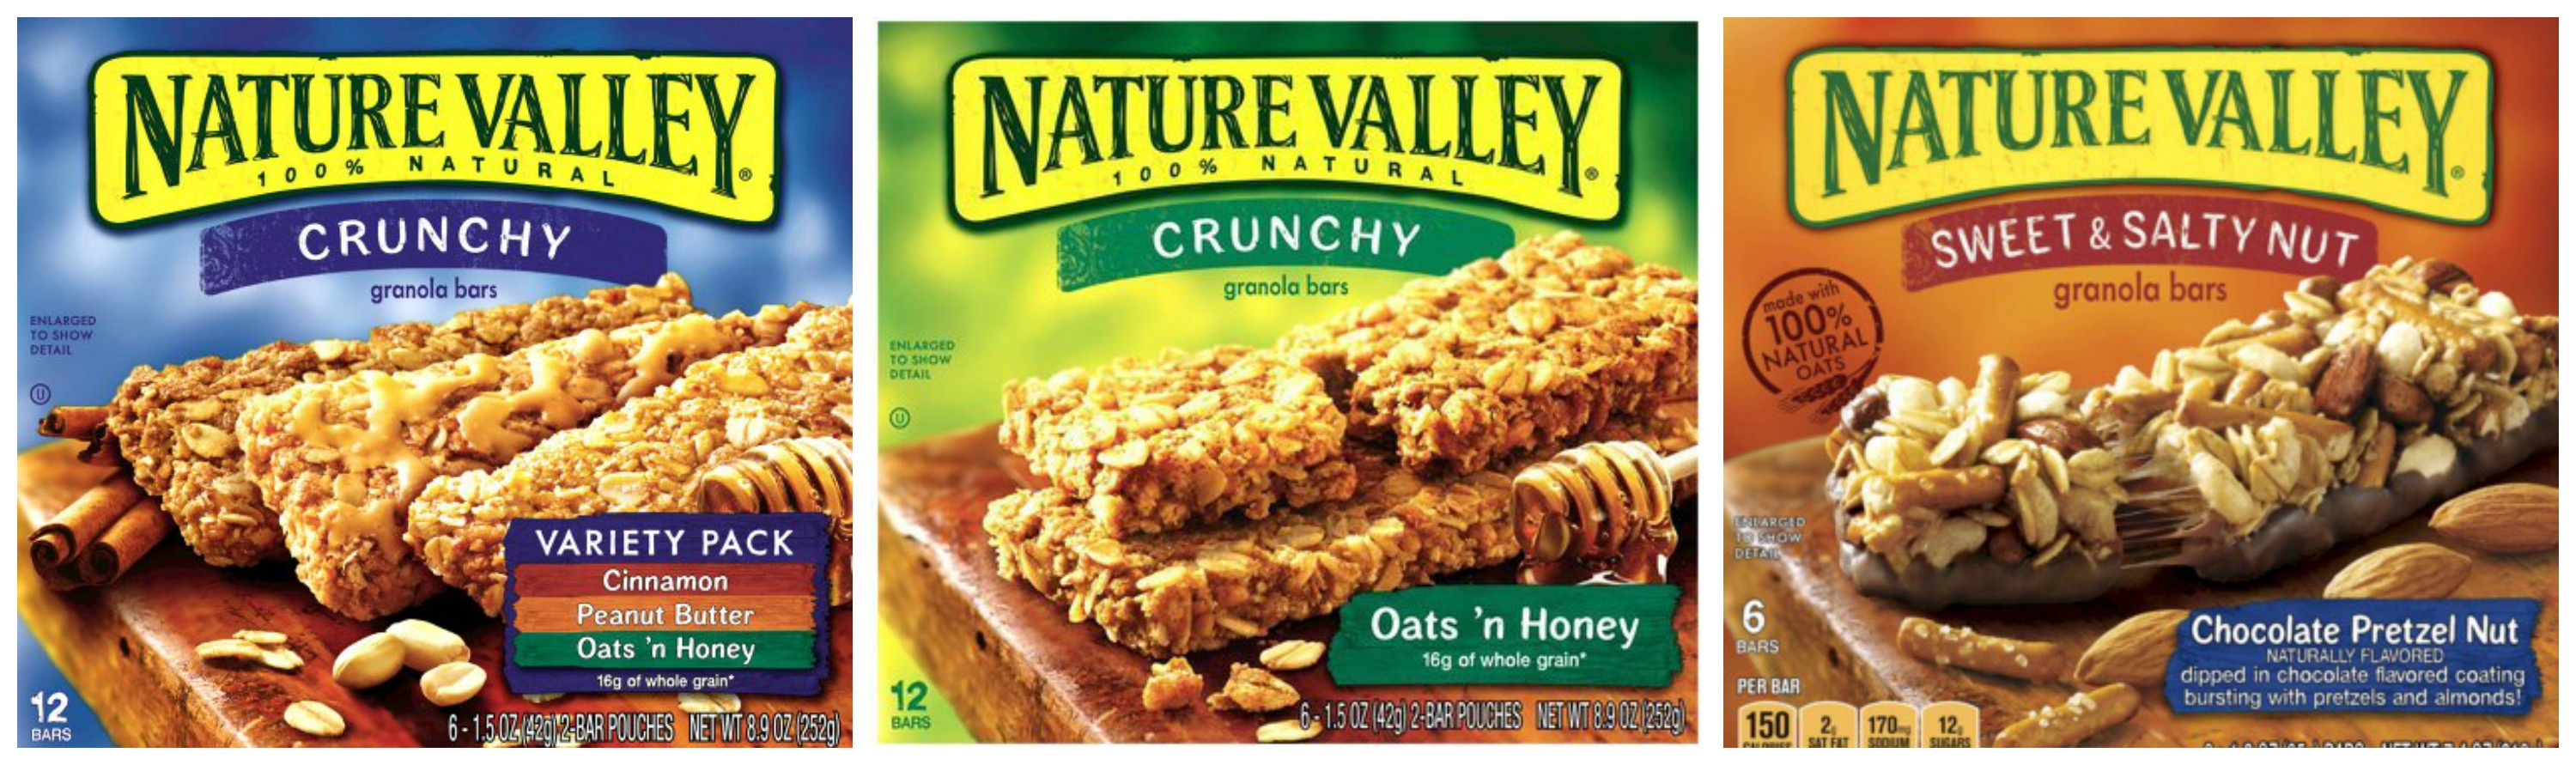 Nature Valley Chewy Trail Mix Bars Variety Pack Dark Chocolate And Nut Fruit And Nutpck.